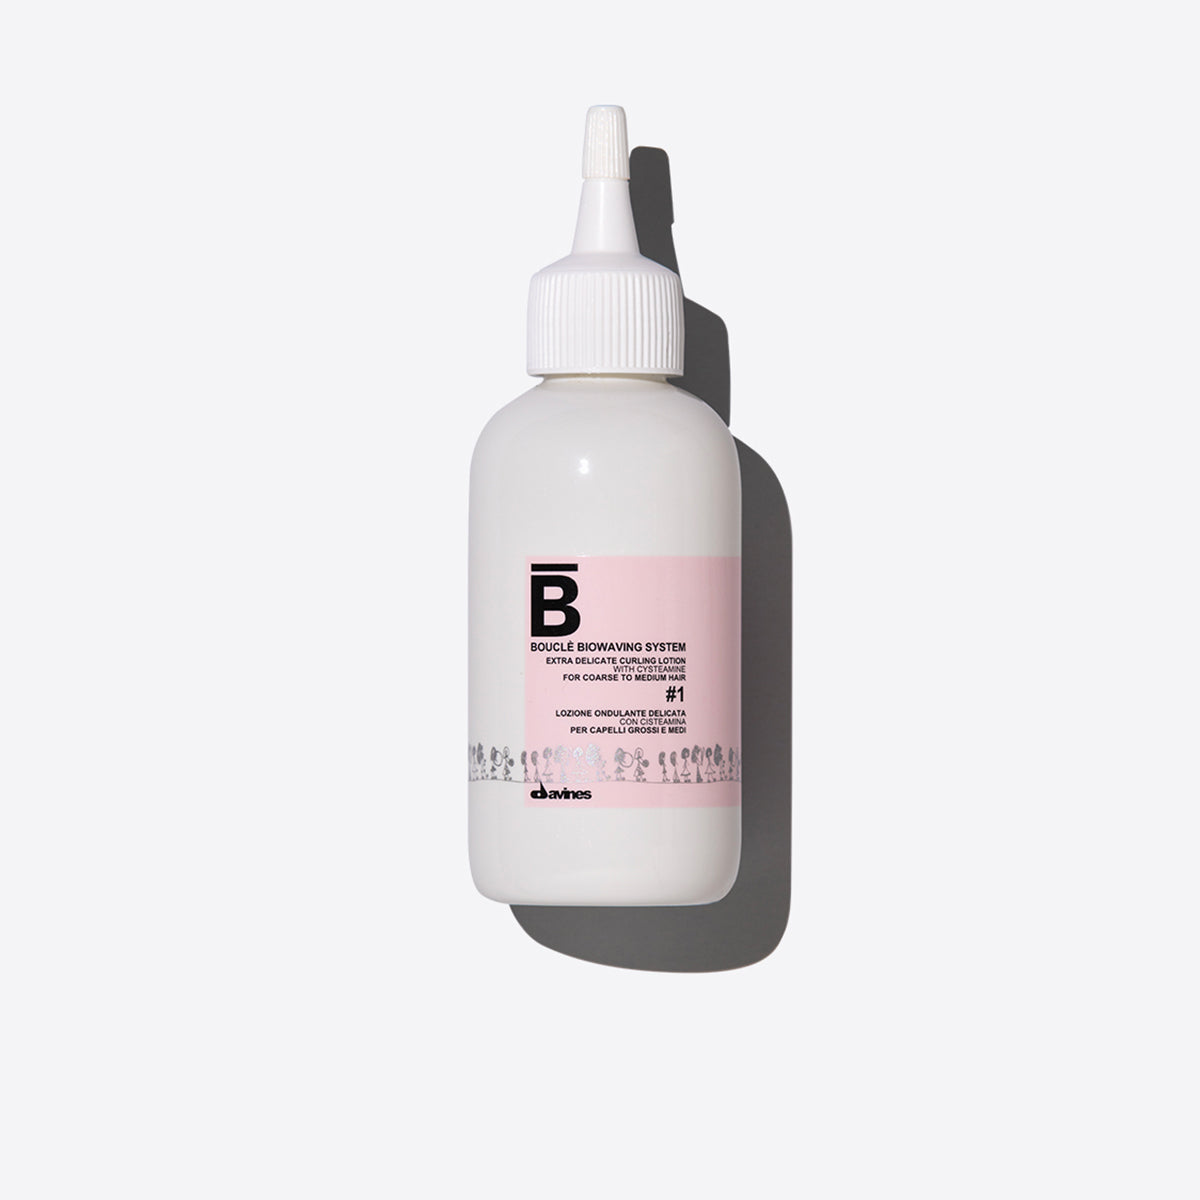 Extra Delicate Curling Lotion 1 1  100 ml / 3,38 fl.oz. Davines